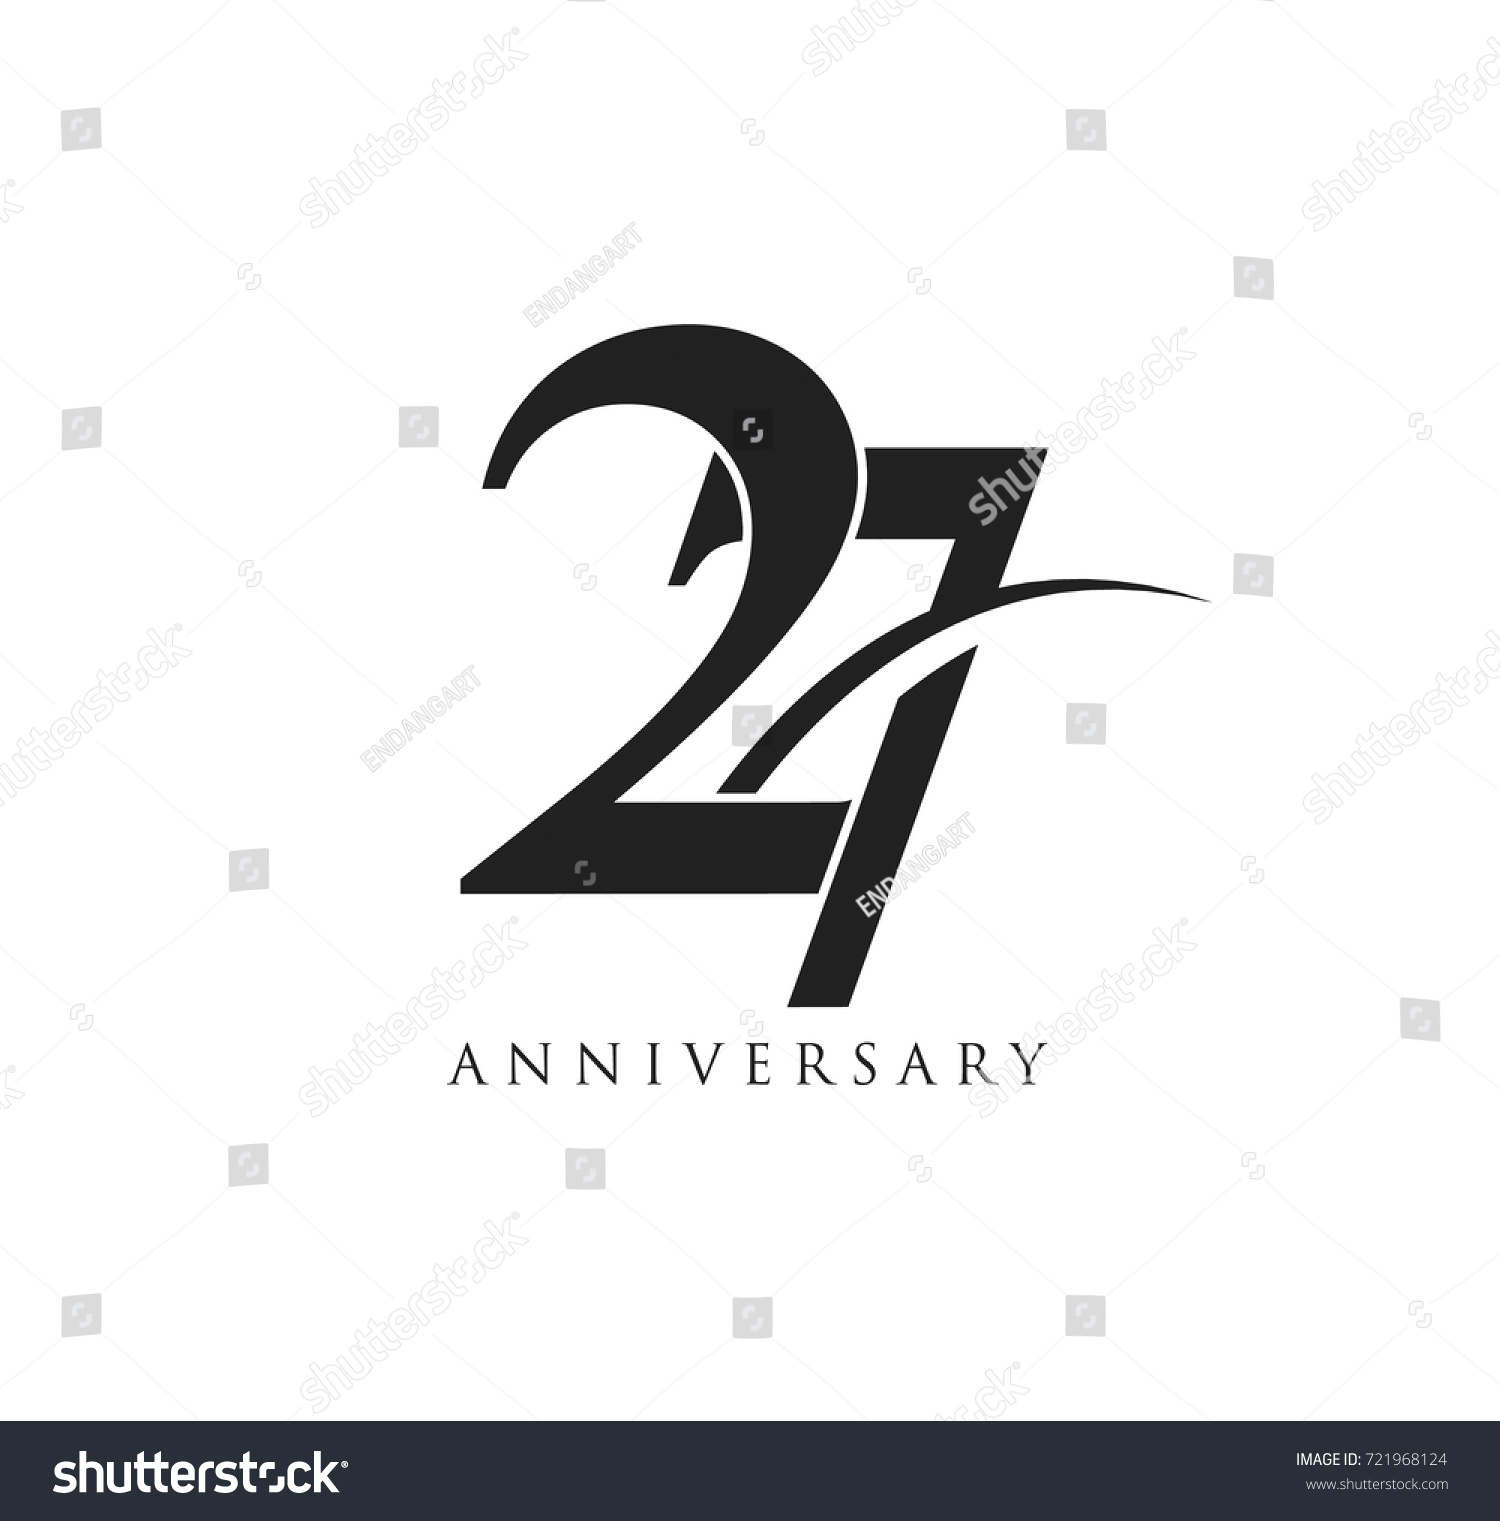 27 years anniversary pictogram vector icon stock vector 721968124 27 years anniversary pictogram vector icon simple years birthday logo label black and white biocorpaavc Images